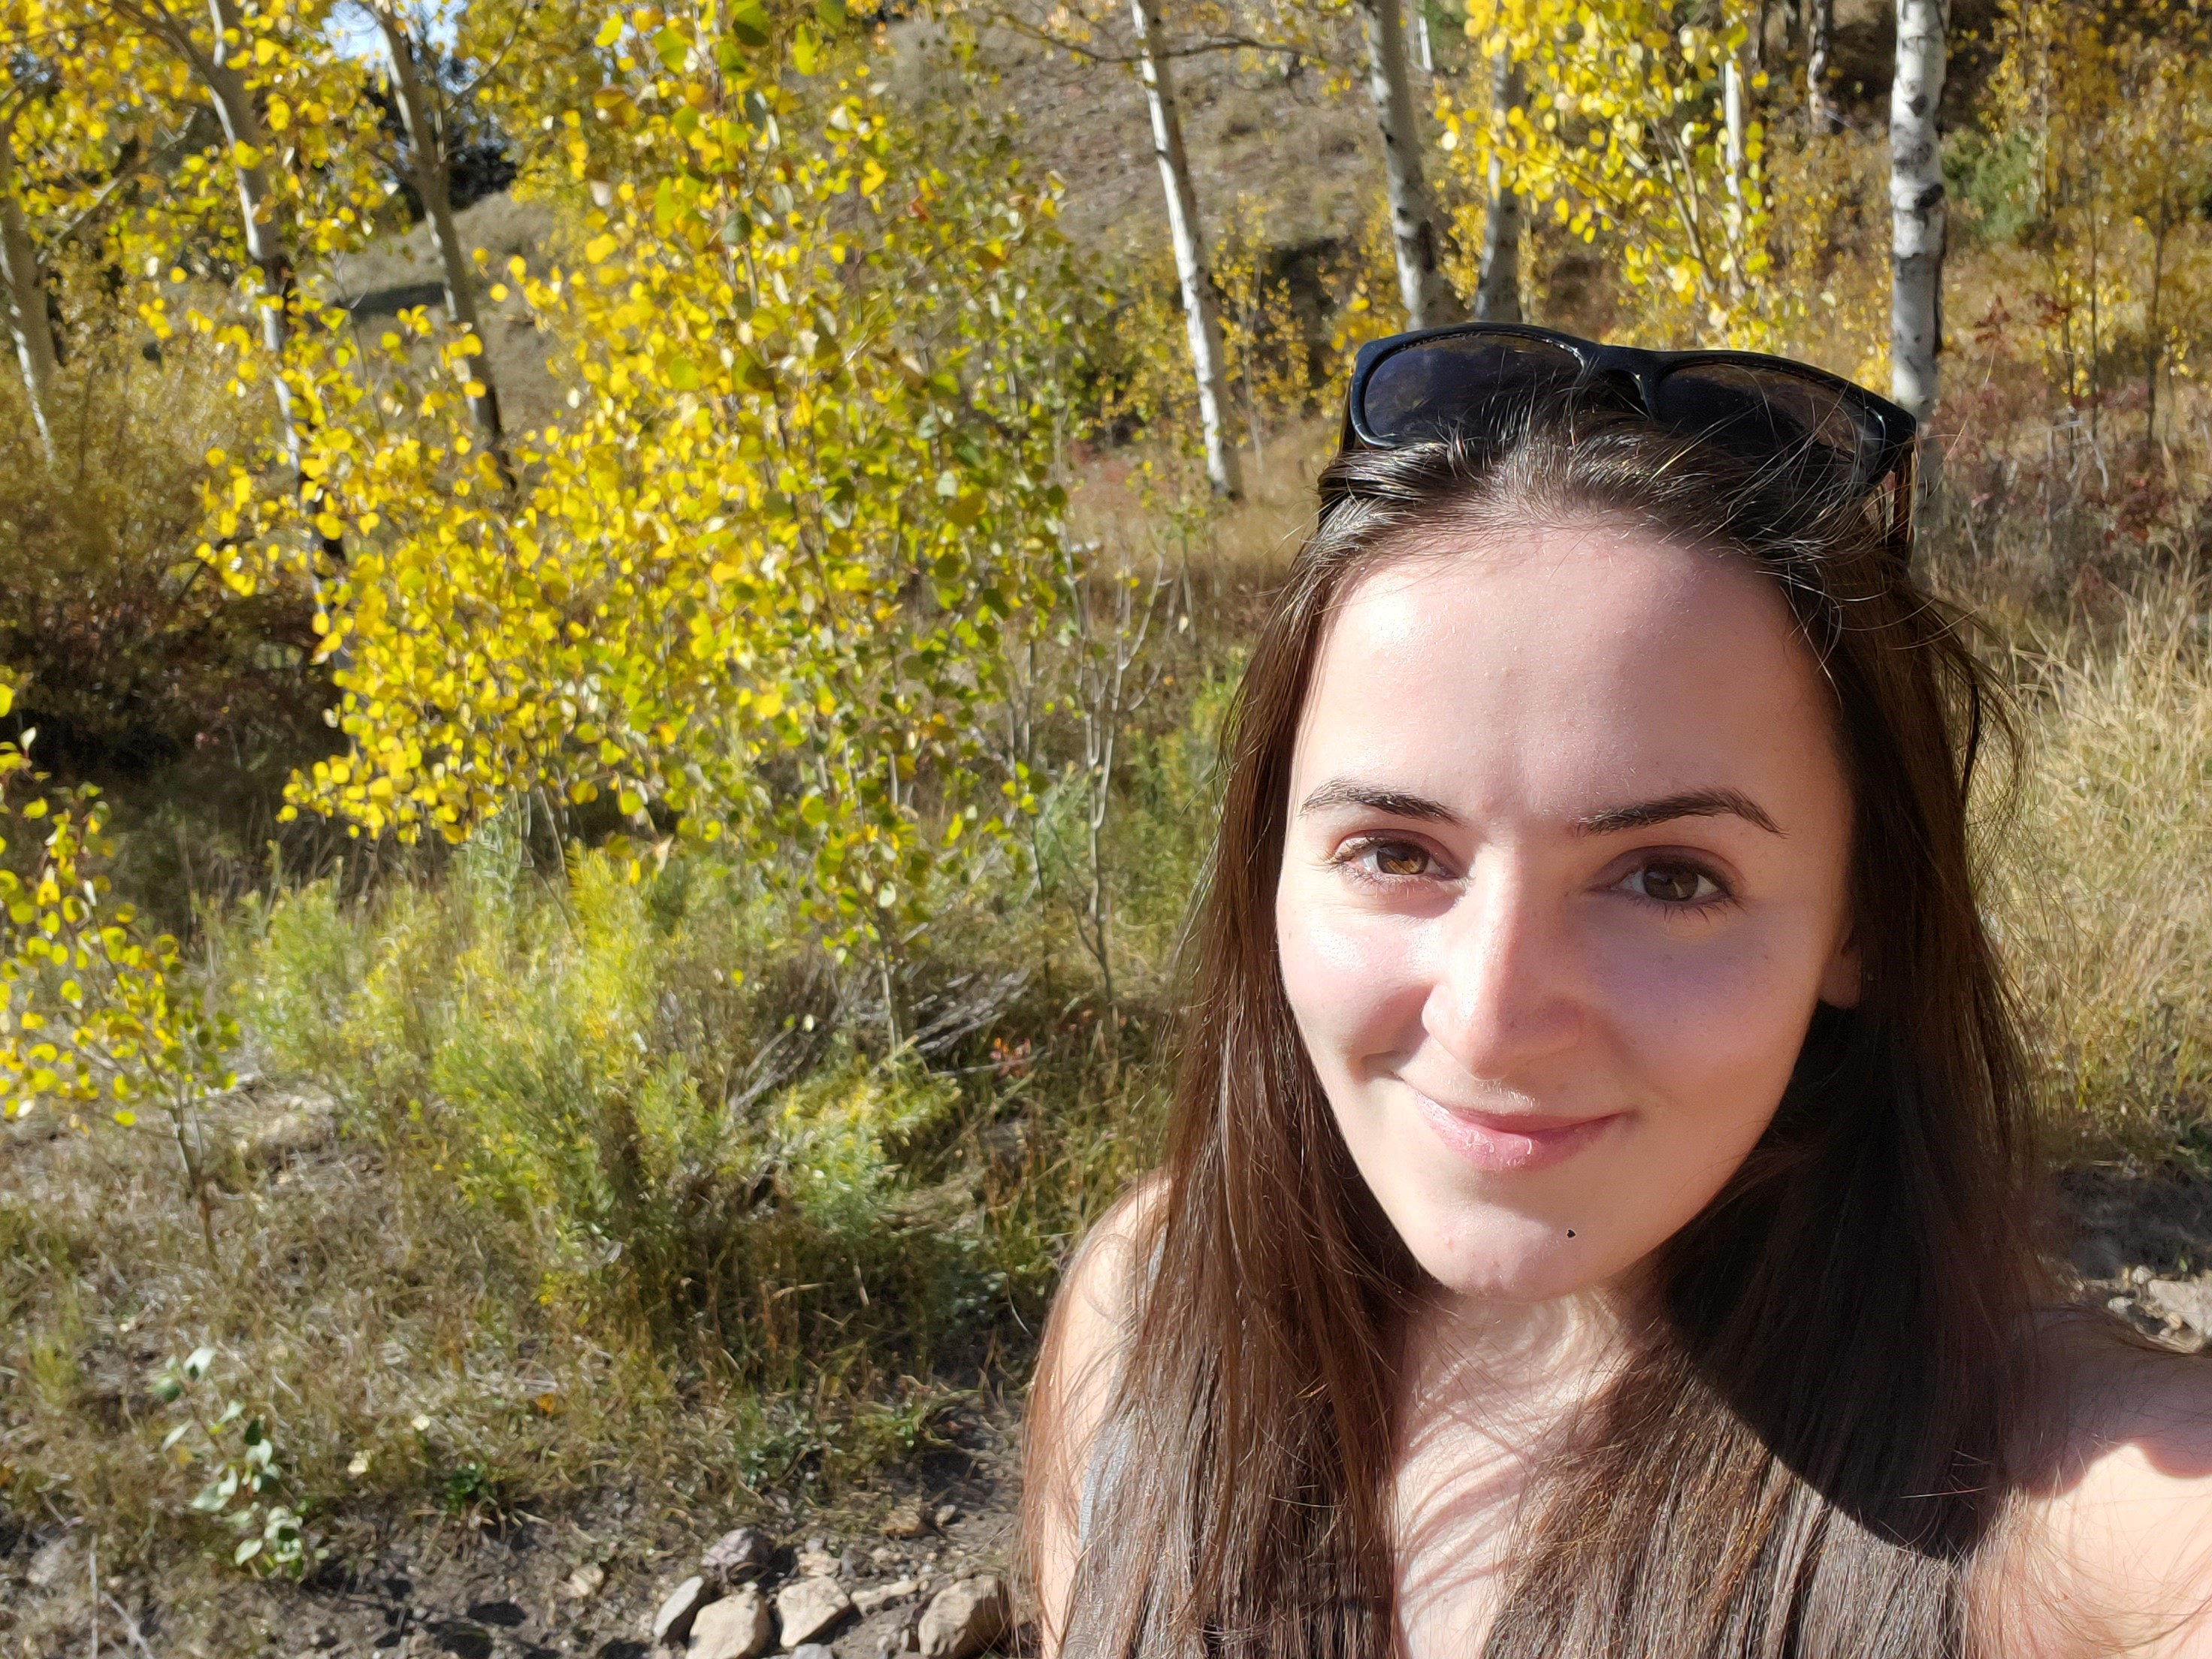 Anna Leggett takes a selfie of herself while hiking in the woods.